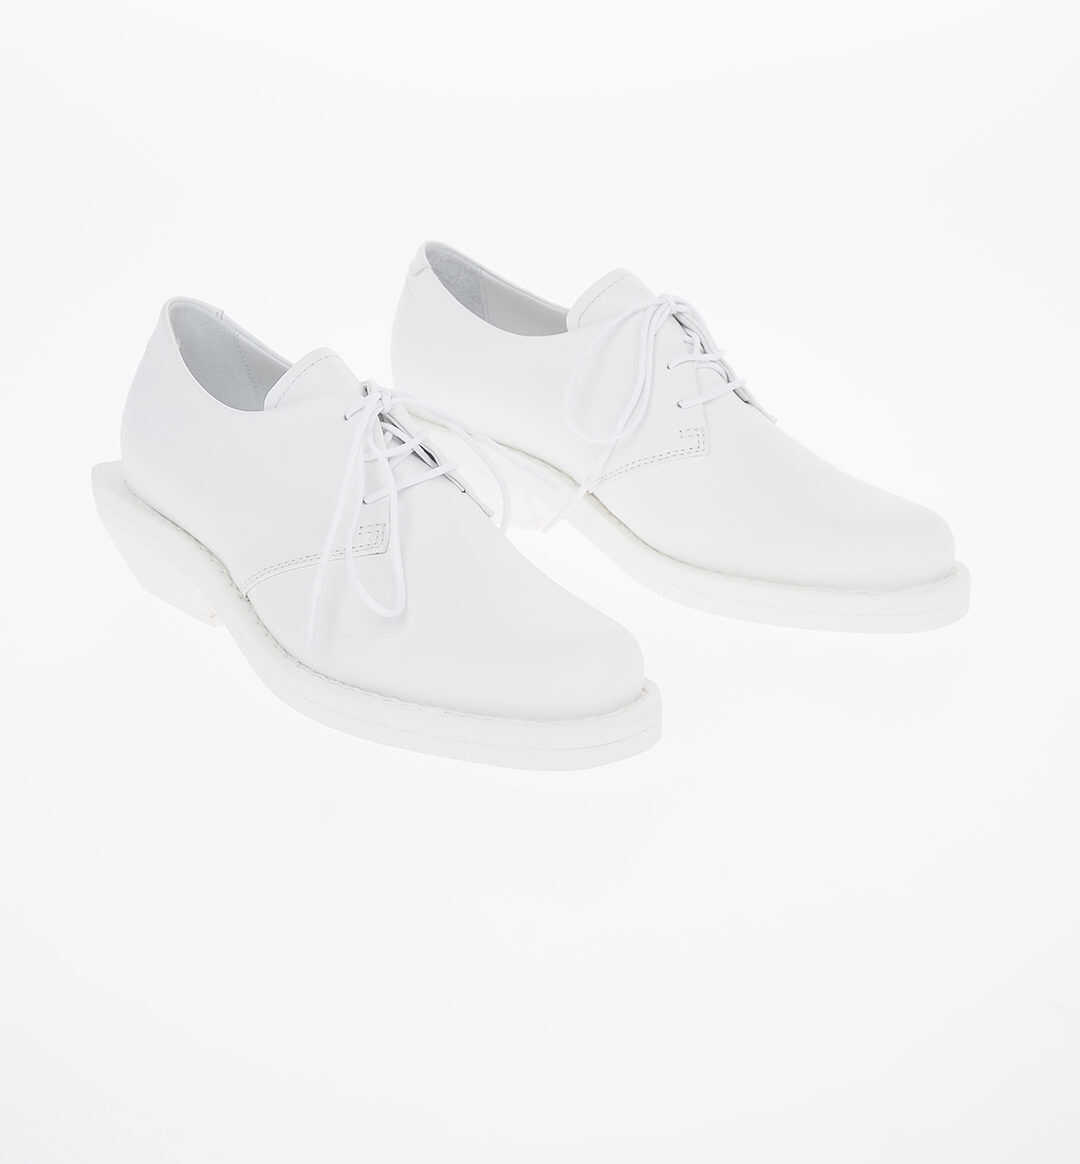 Maison Margiela MM6 6cm Leather Oxford Shoes with Heel WHITE imagine b-mall.ro